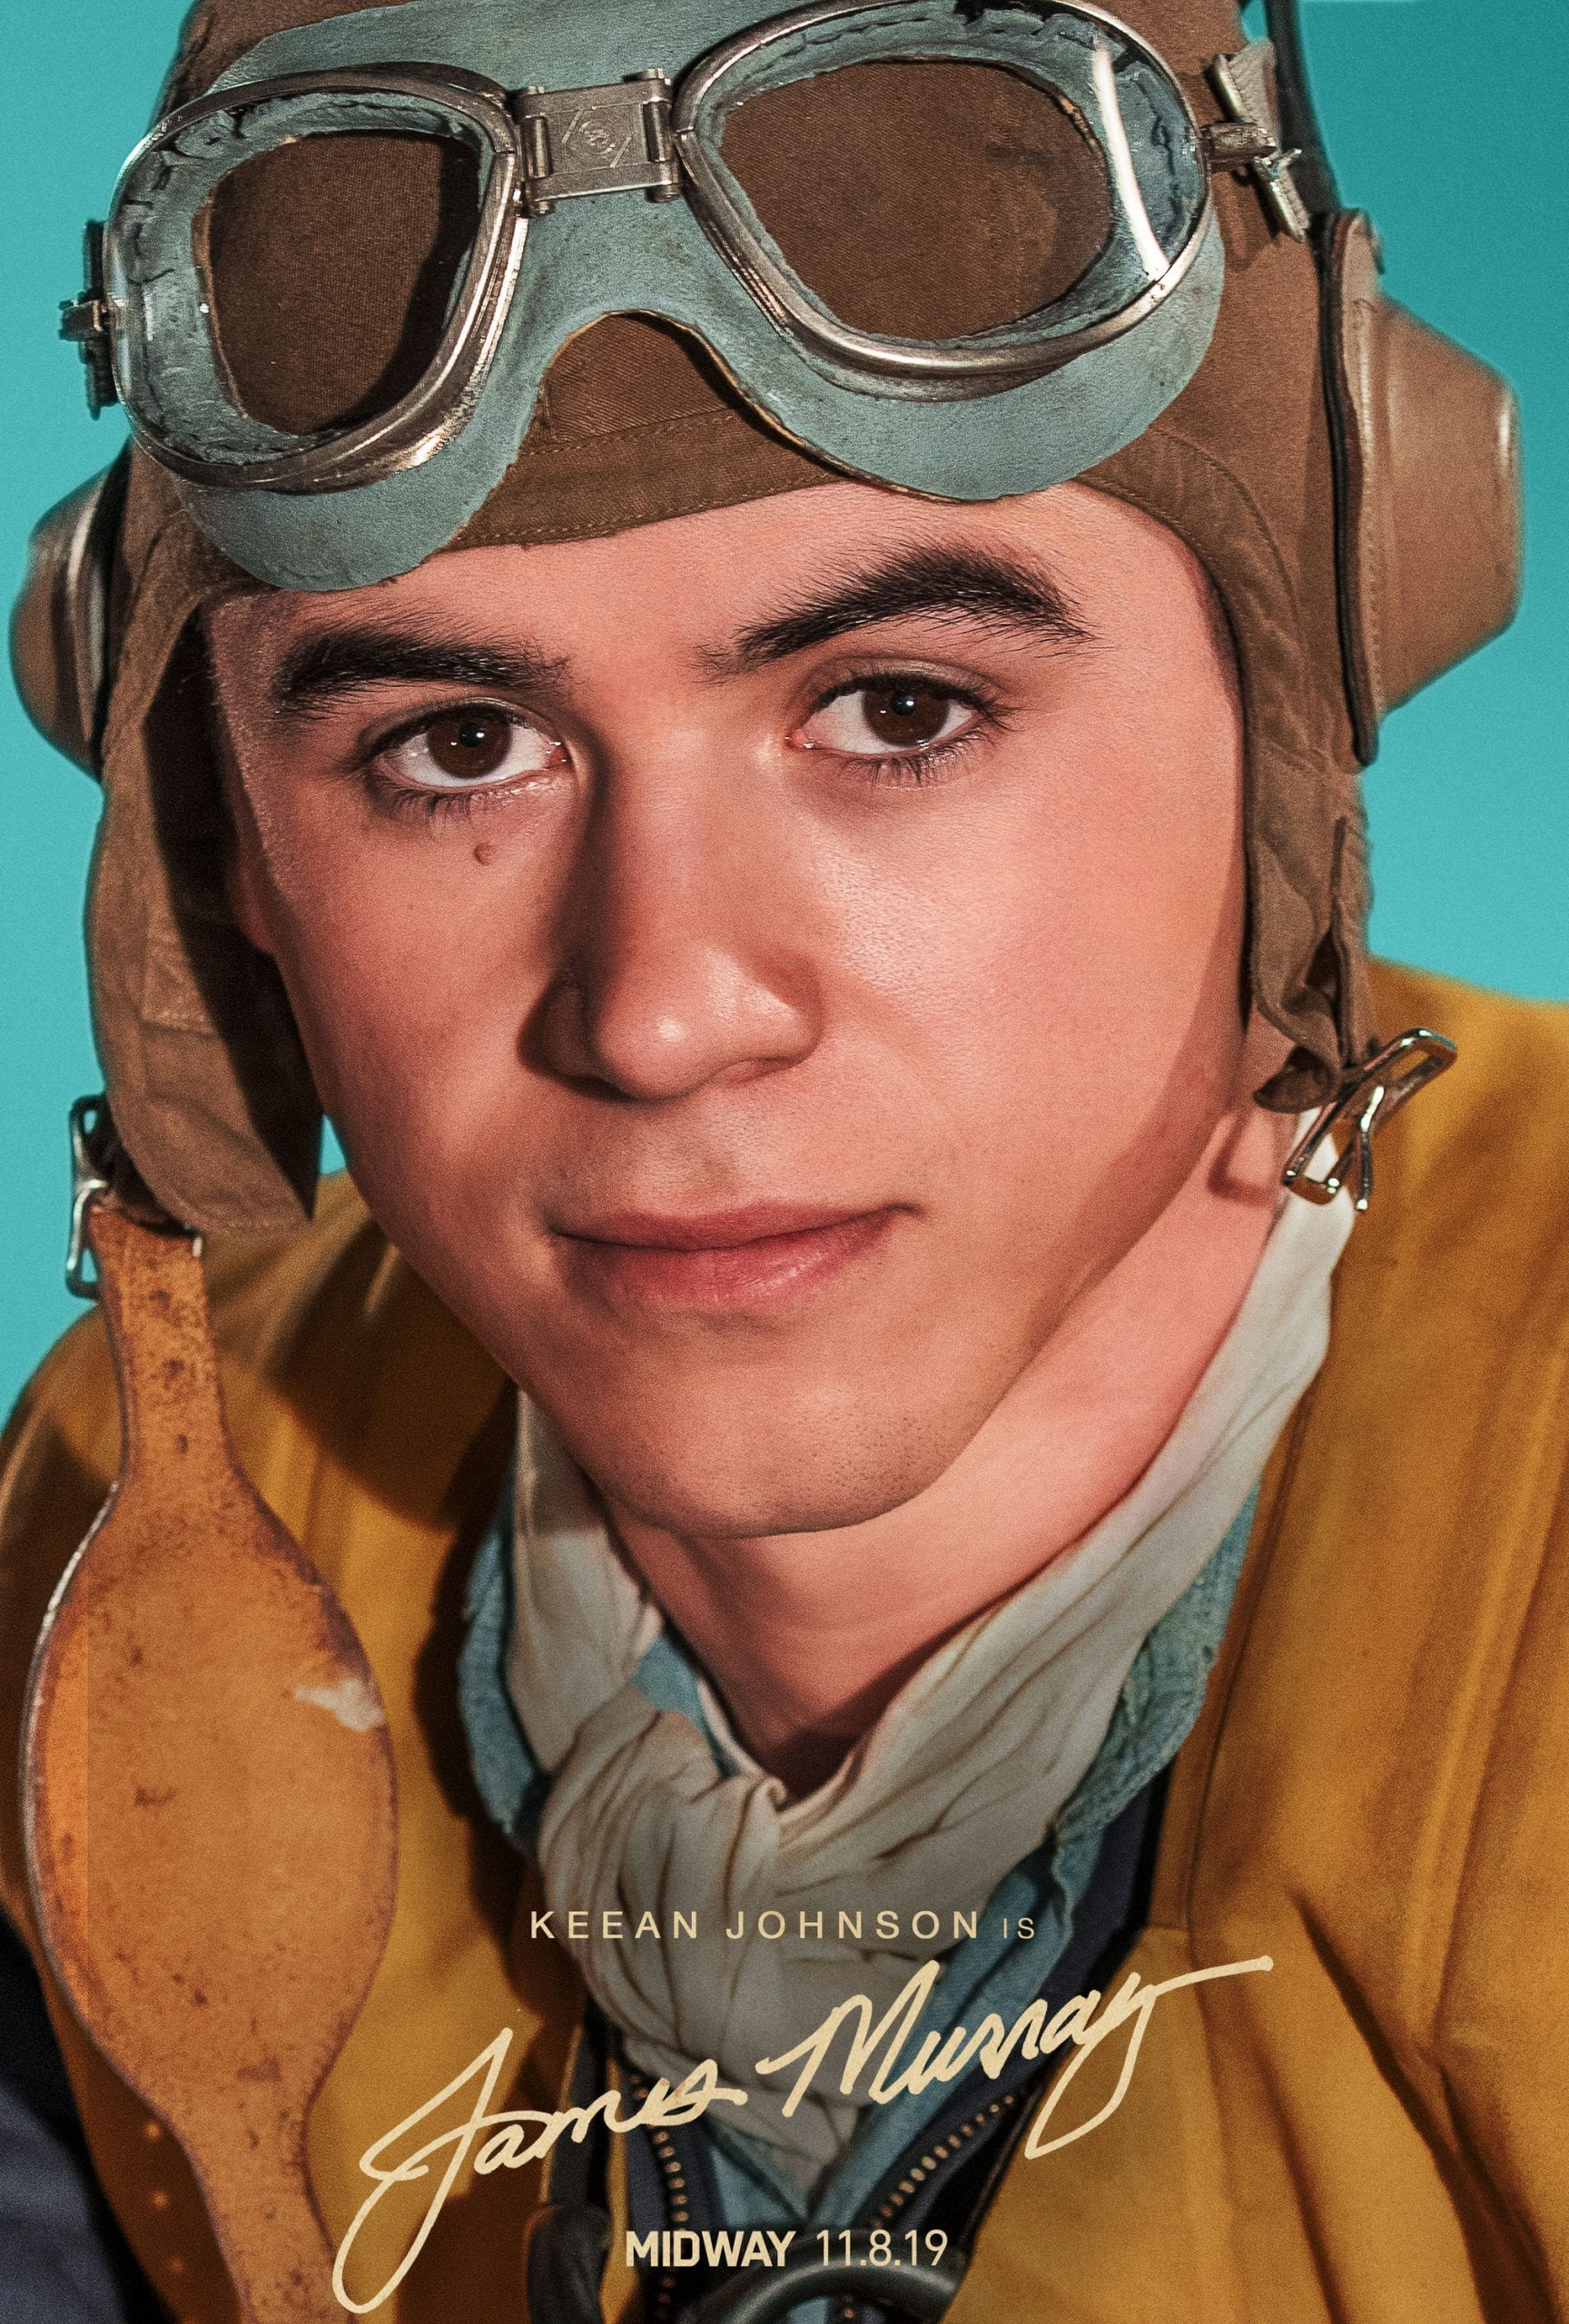 Midway Character Posters Keean Johnson as James Murray